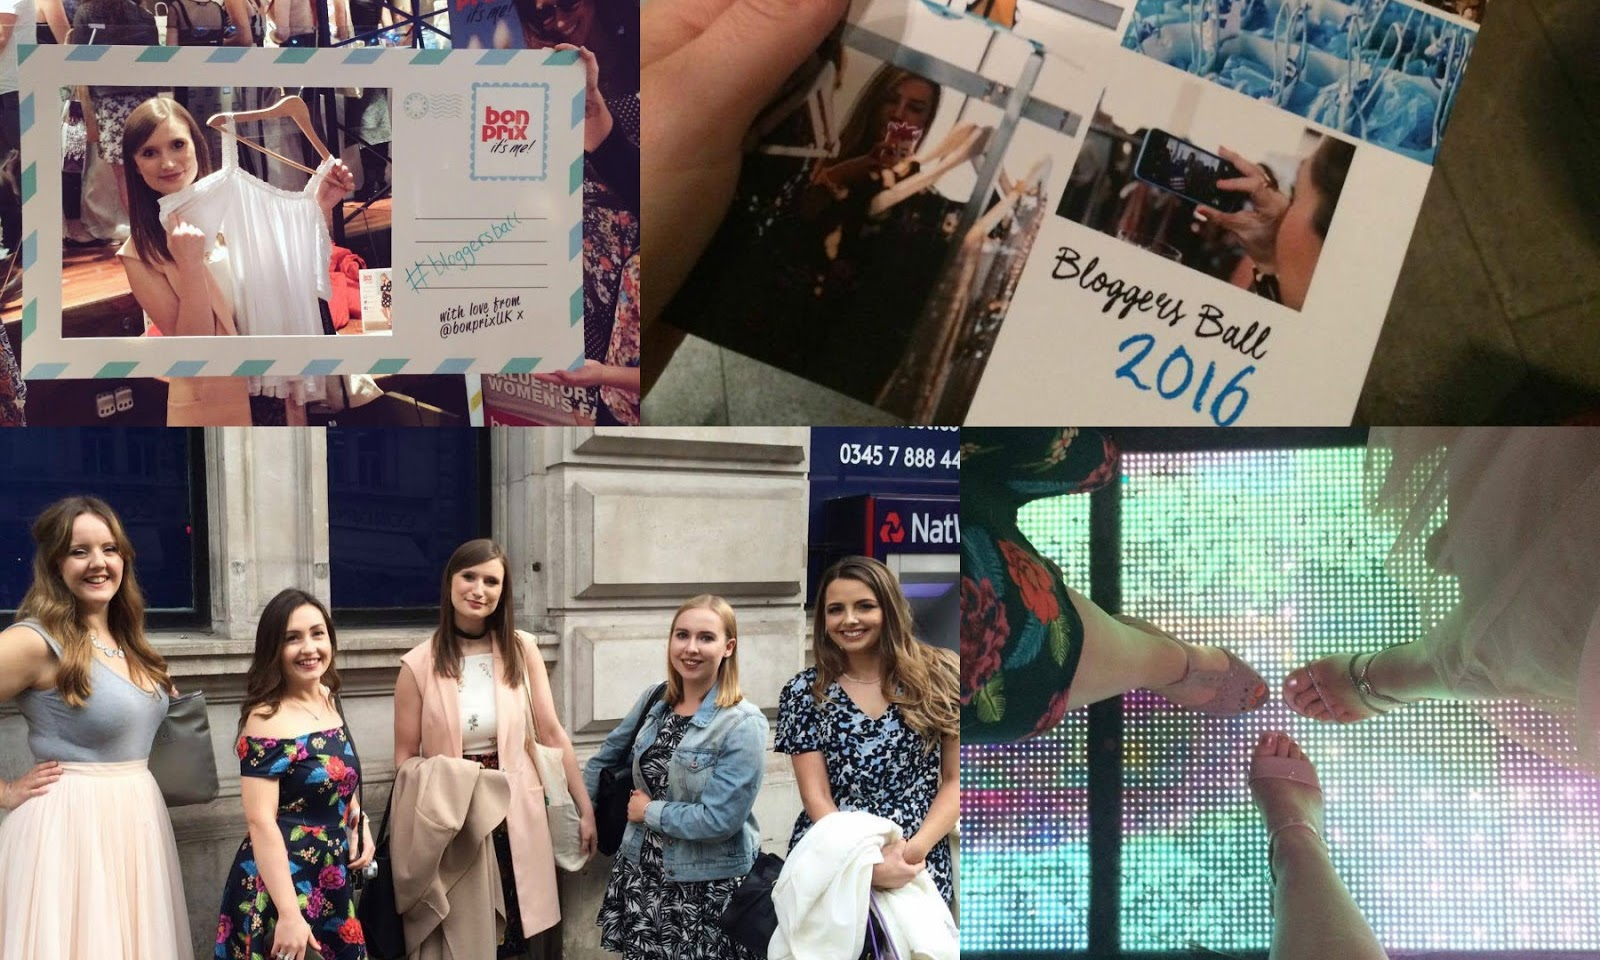 Clashing Time tells you why you should go to blogging events